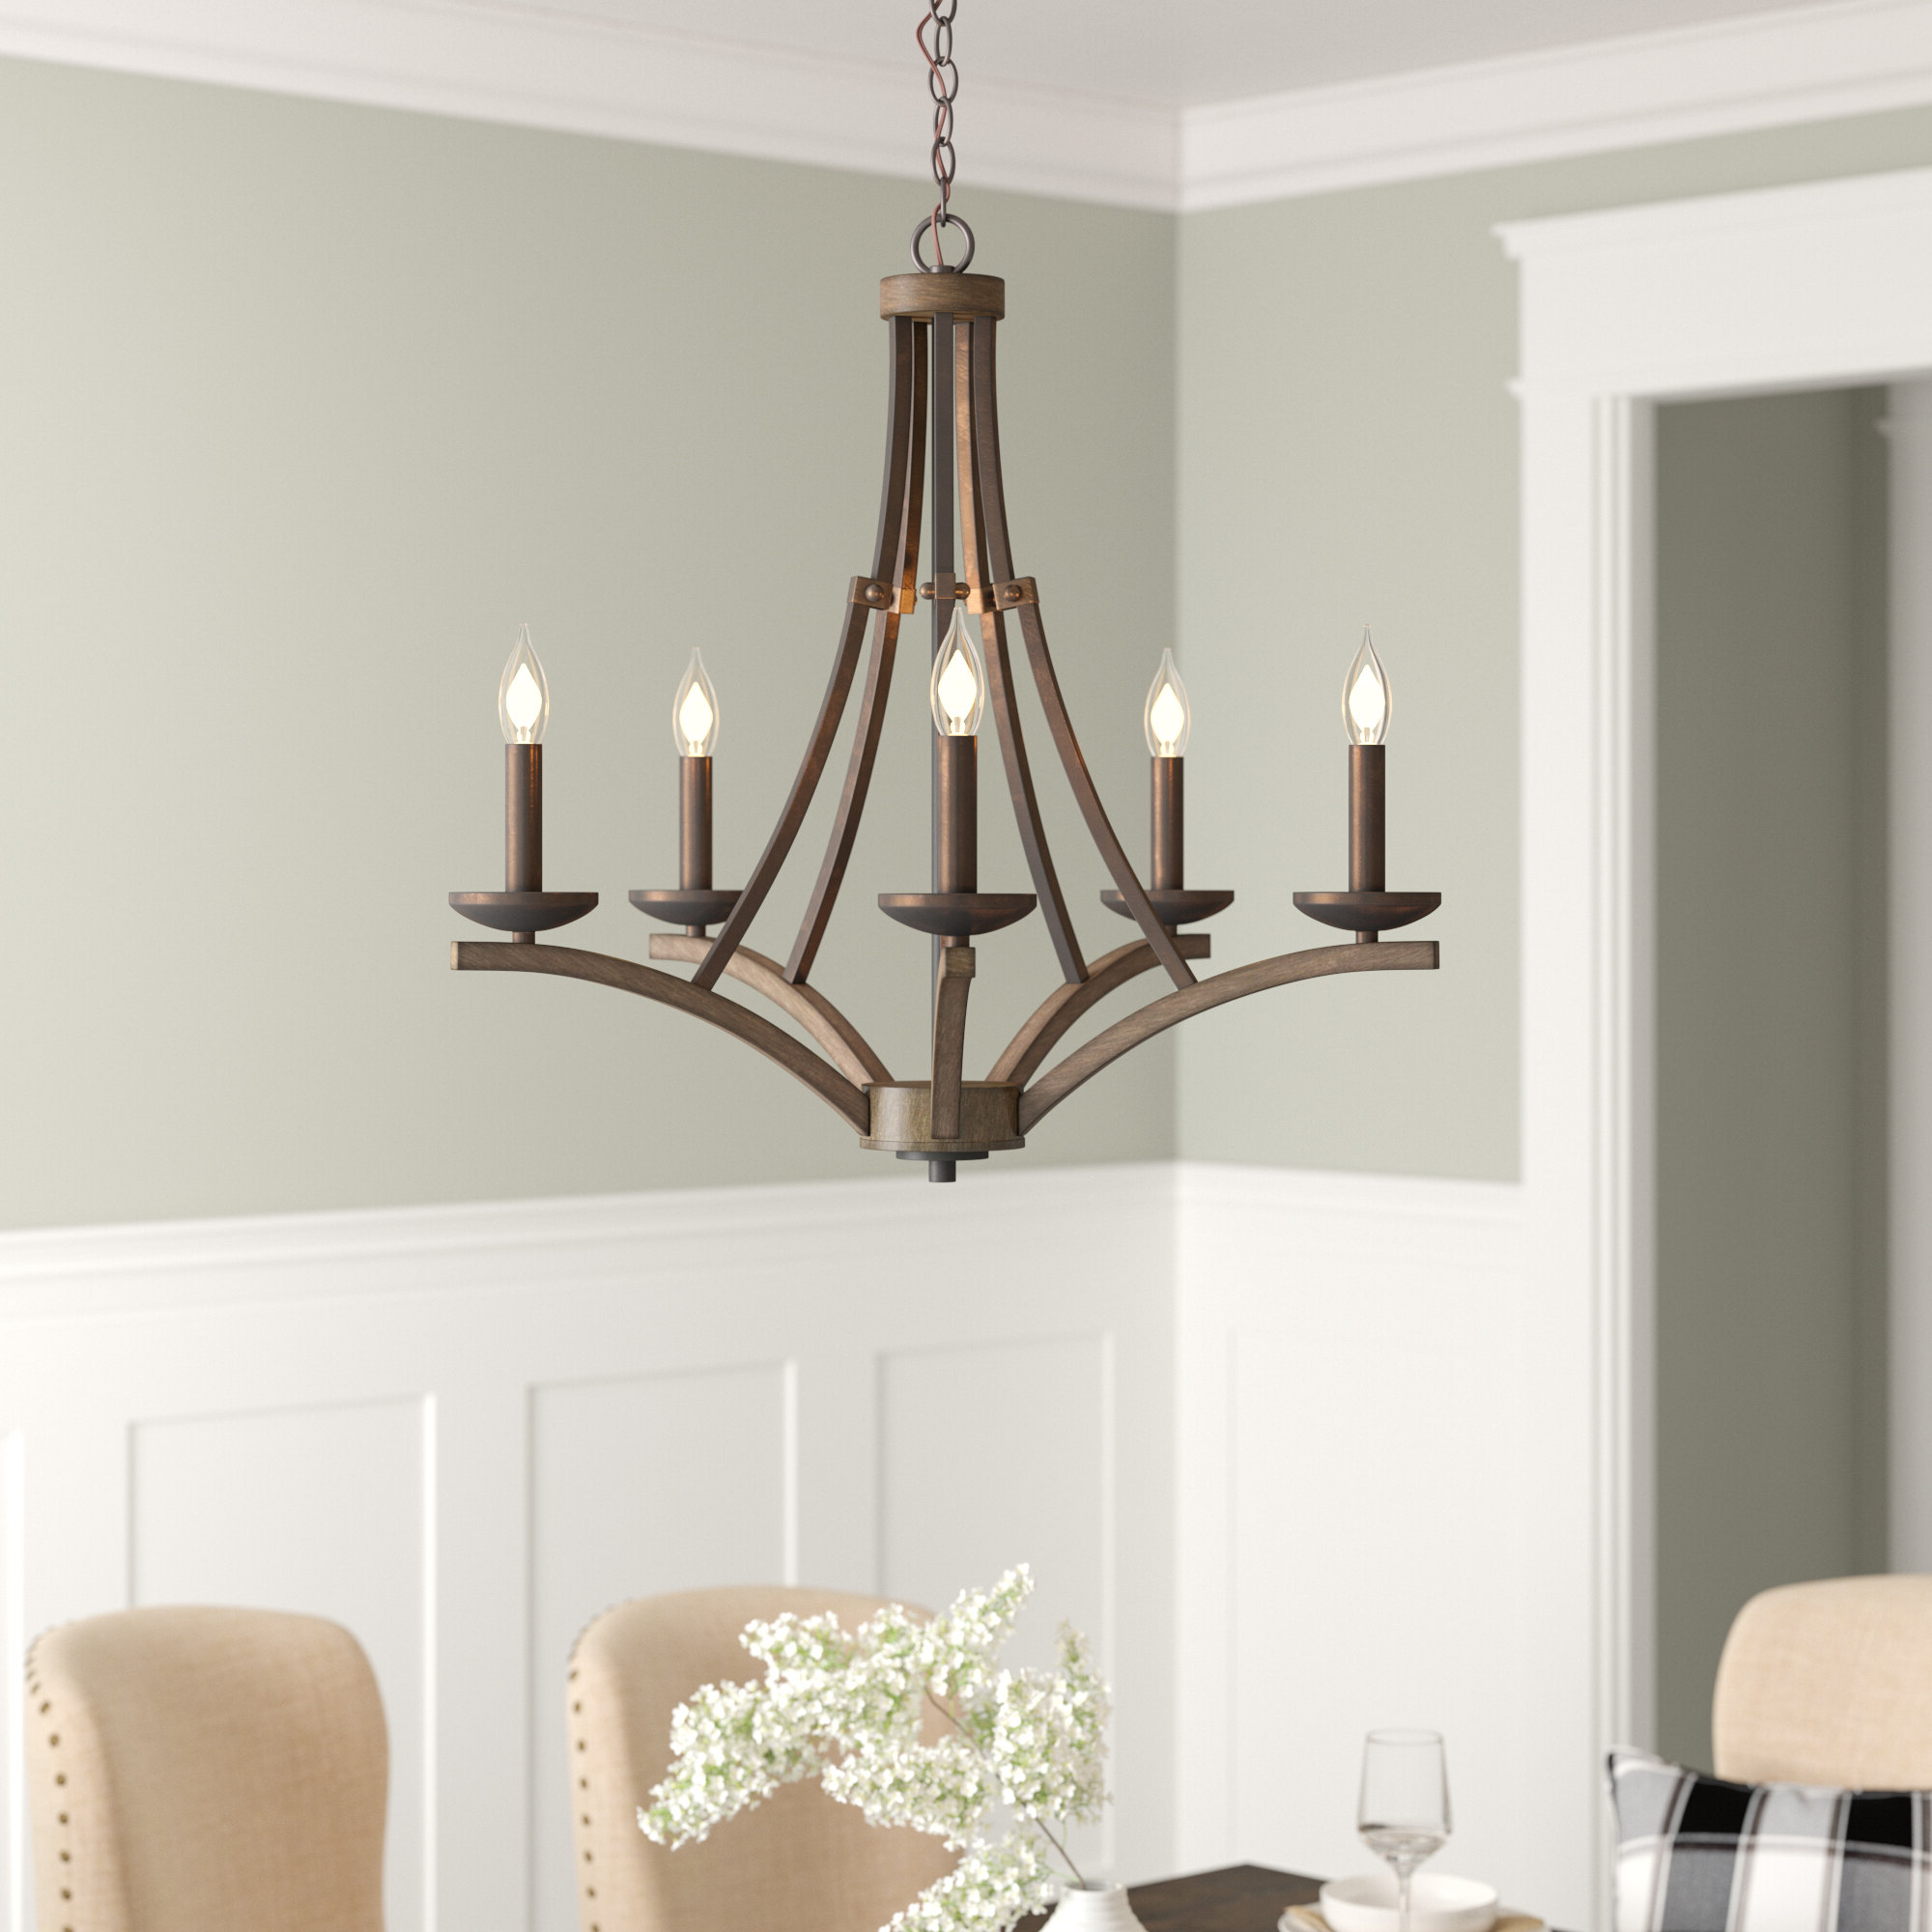 Wireman 5 Light Candle Style Chandelier In Popular Kenna 5 Light Empire Chandeliers (View 18 of 25)